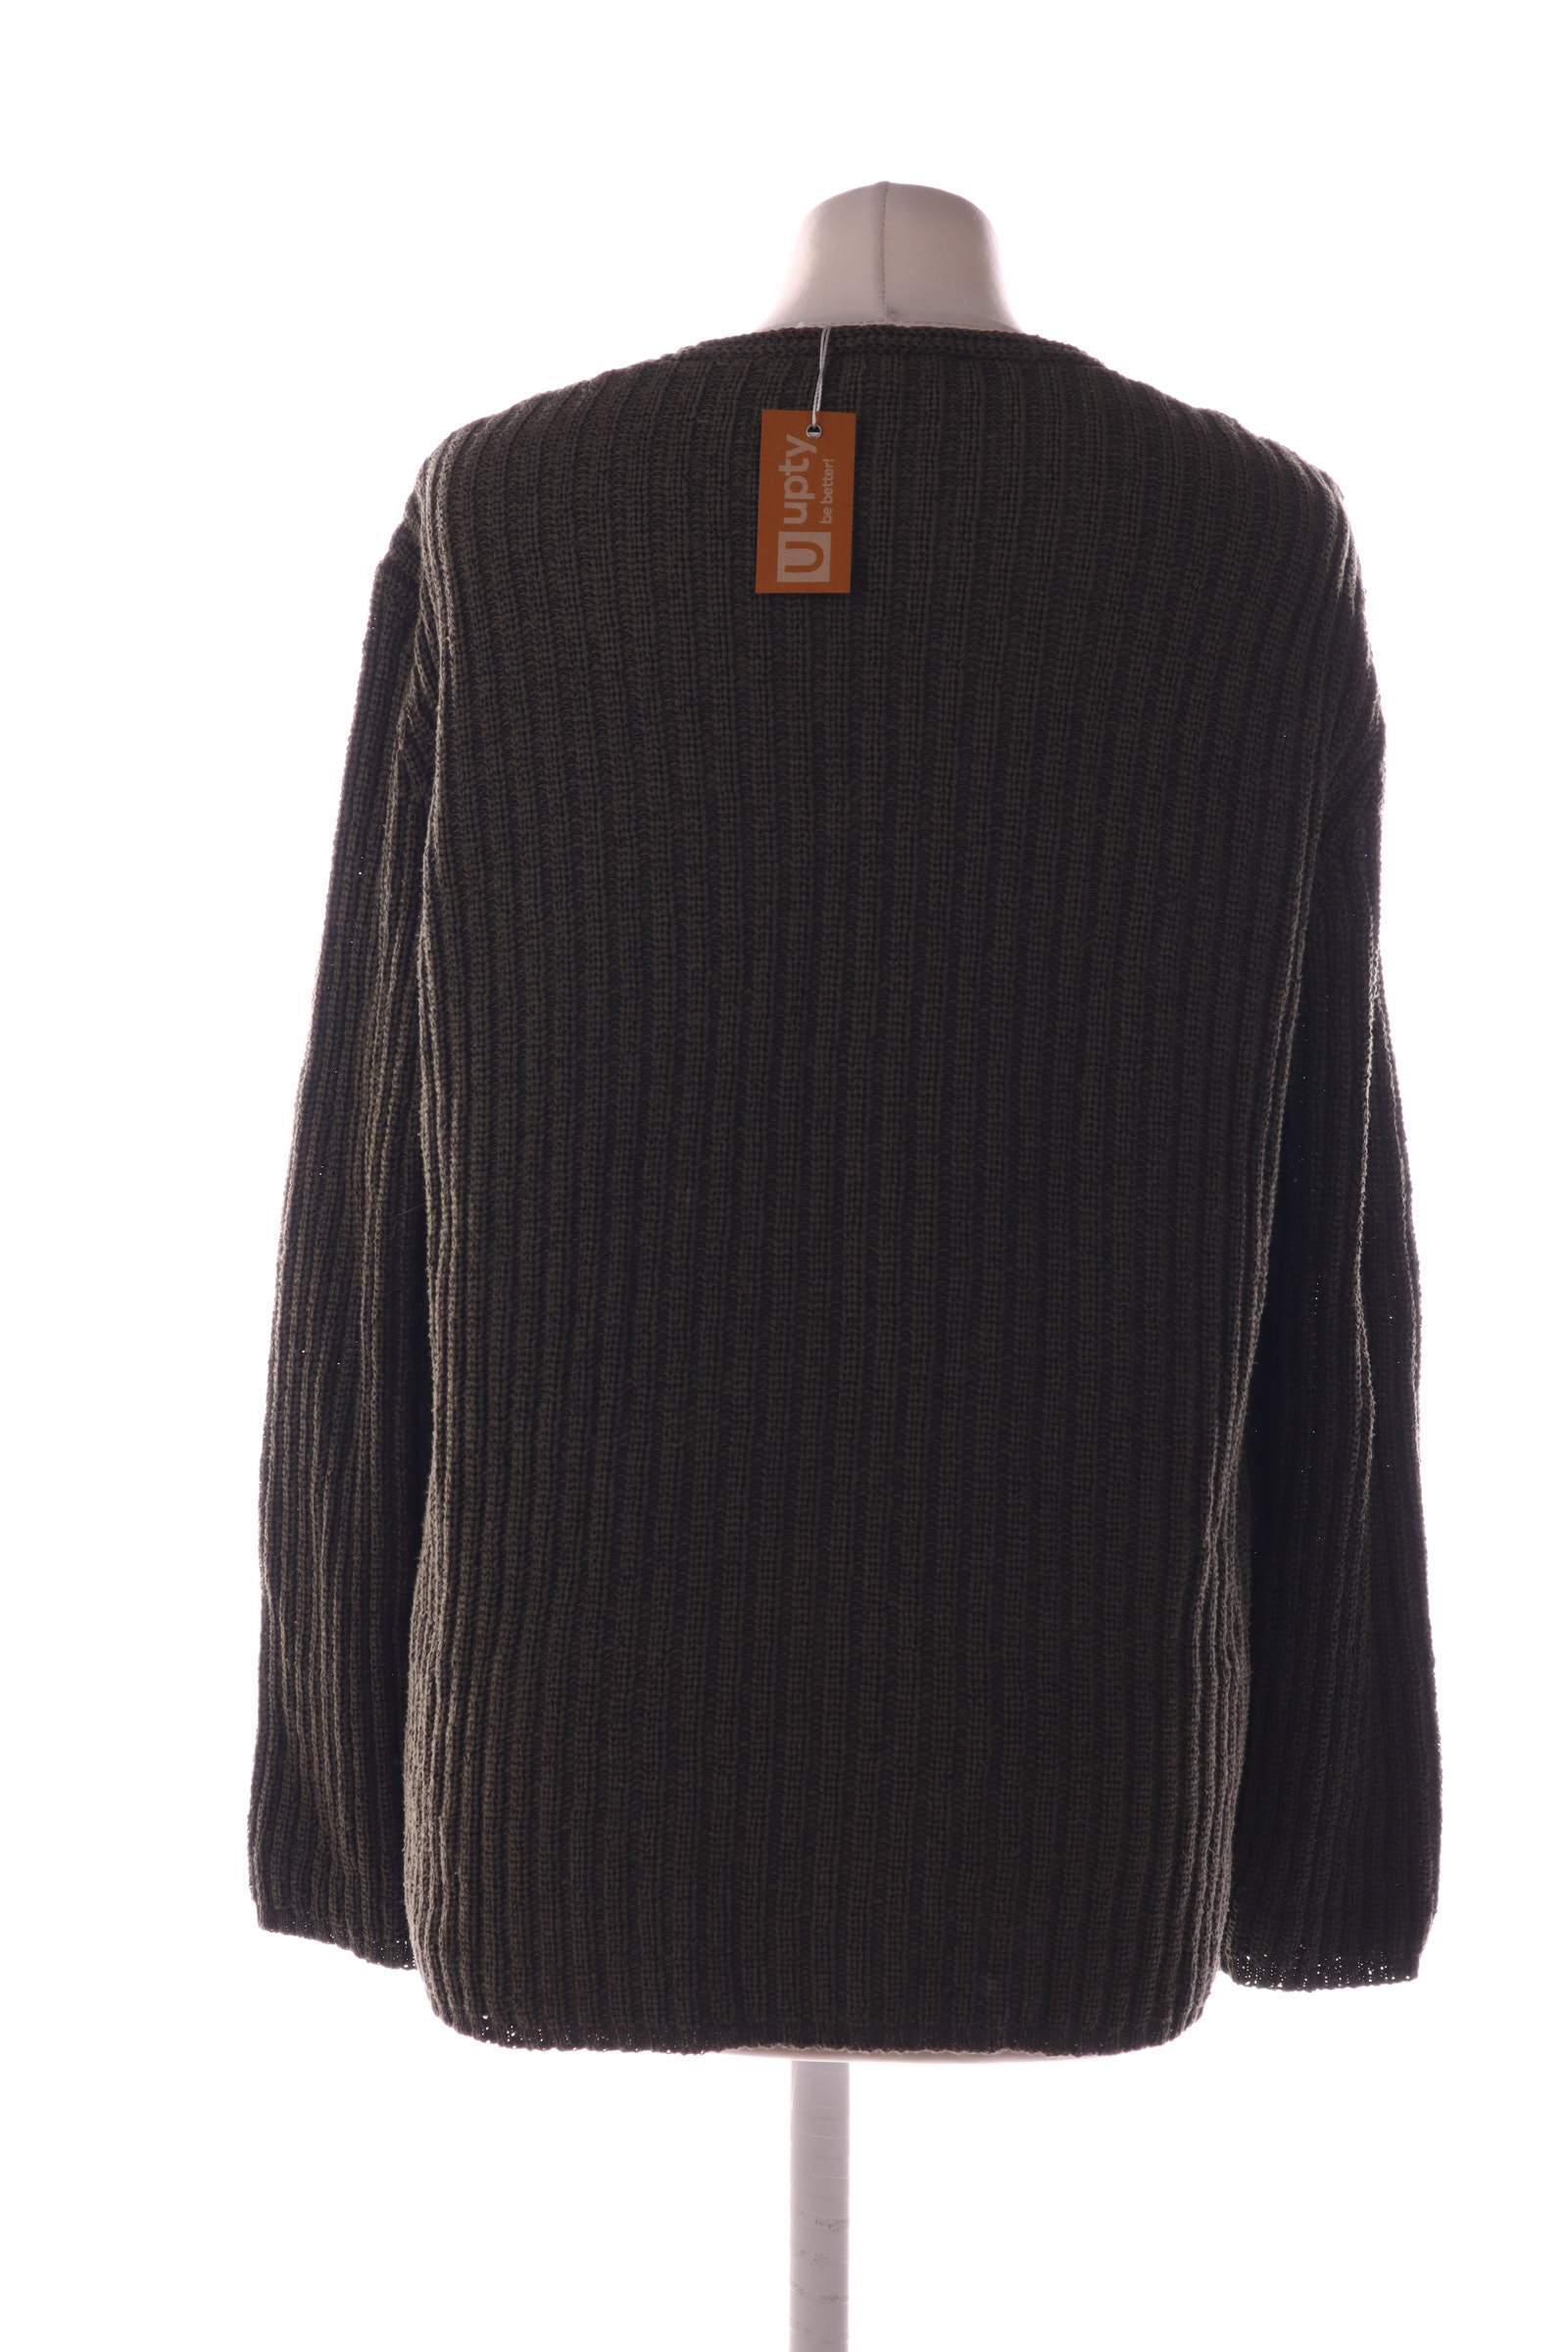 Cassani Green Sweater - upty.store